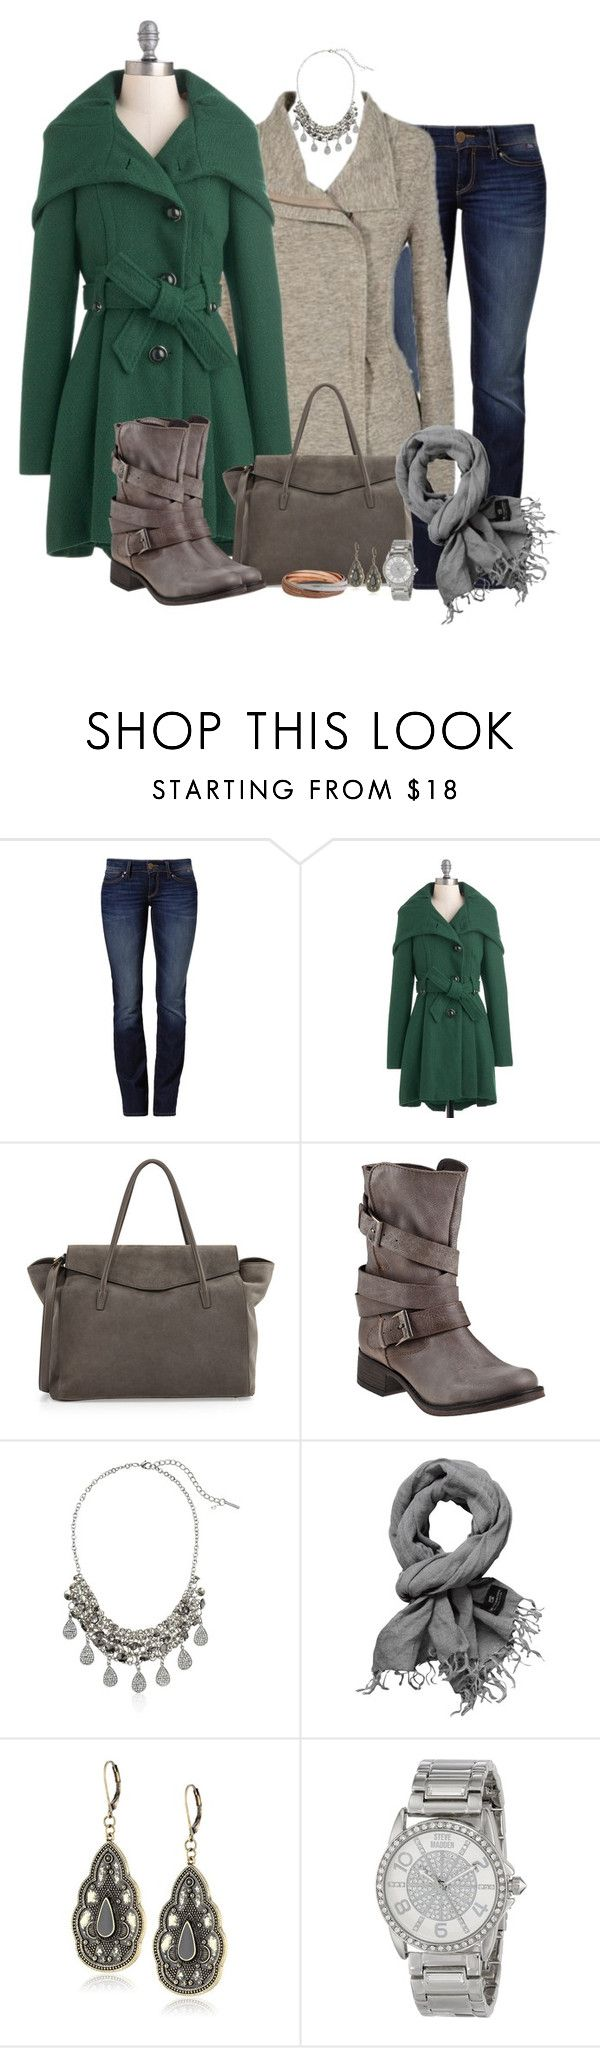 """""""Steve Madden boots"""" by elizabethdawes ❤ liked on Polyvore featuring Mavi, Steve Madden, Tom Ford and Scotch & Soda"""